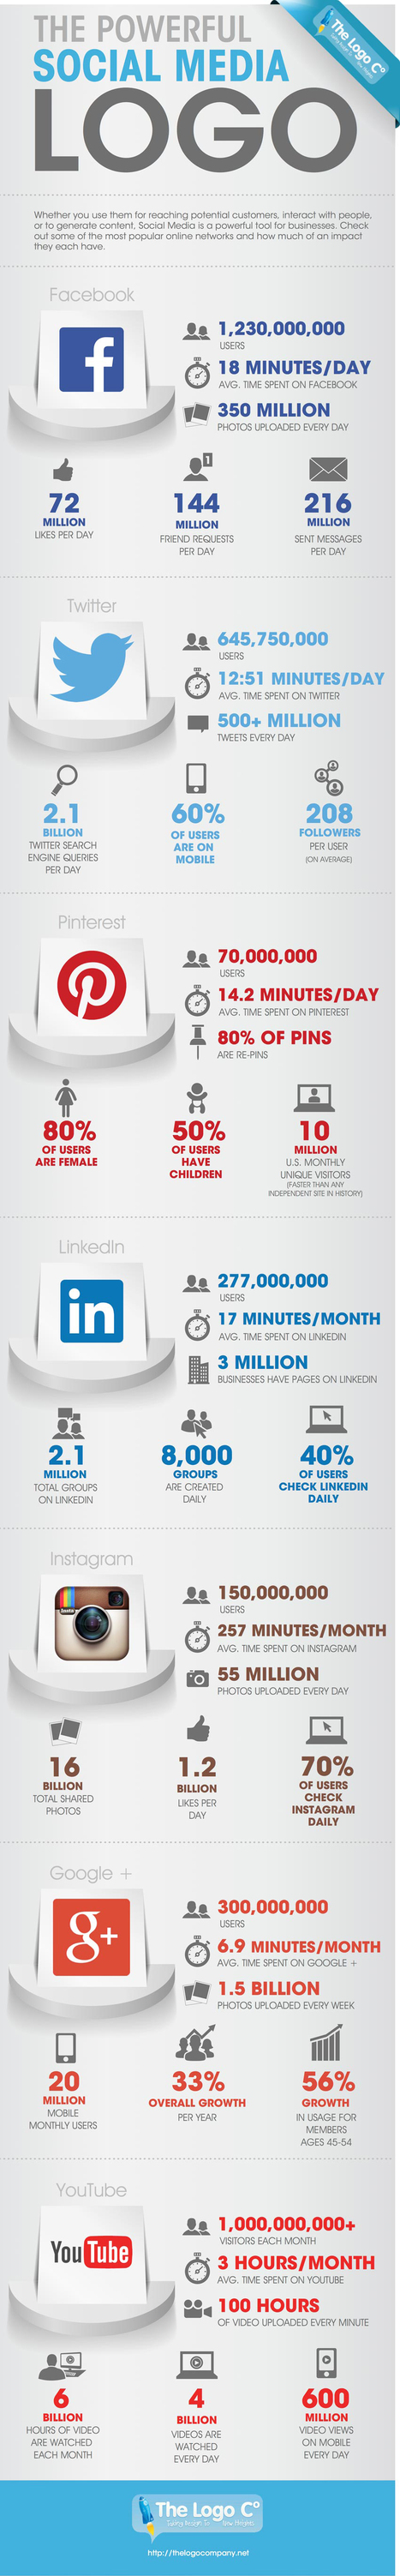 2014: The Numbers Behind Social Media [infographic] | Social Media Trends | Scoop.it